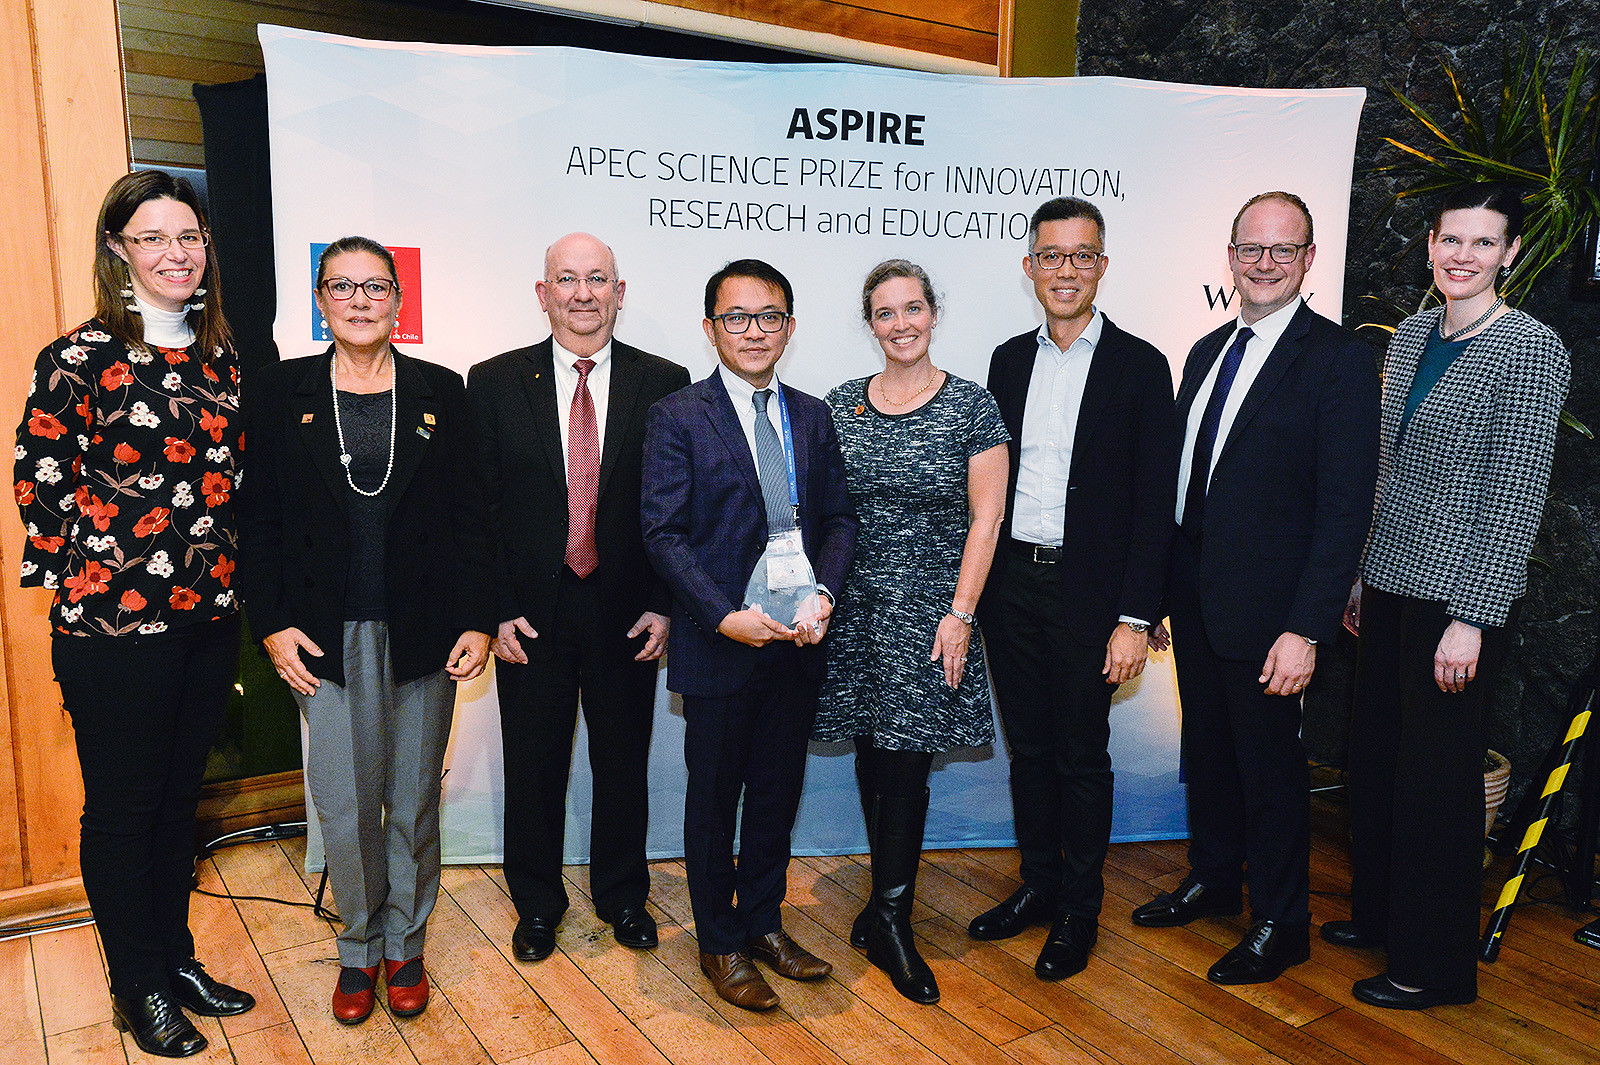 Dr Ng Yun-hau (4th from left), Associate Professor of CityU's School of Energy and Environment, receives this year's APEC Science Prize for Innovation, Research and Education (ASPIRE) for his contributions to the discipline of photoelectrocatalysis.